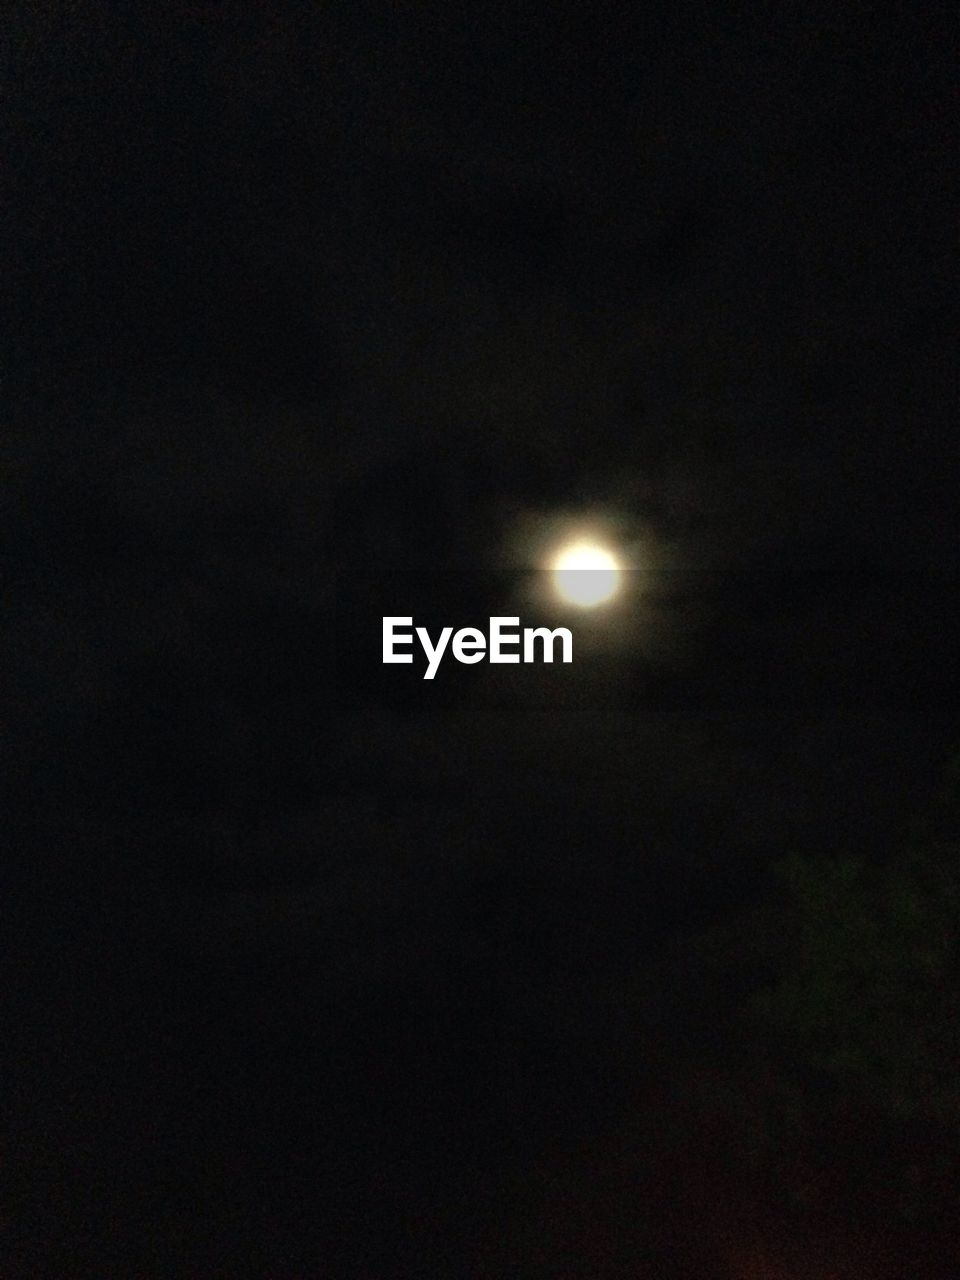 moon, night, astronomy, nature, full moon, scenics, beauty in nature, tranquil scene, planetary moon, moonlight, tranquility, dark, crescent, half moon, solar eclipse, sky, space exploration, space, moon surface, no people, natural phenomenon, outdoors, low angle view